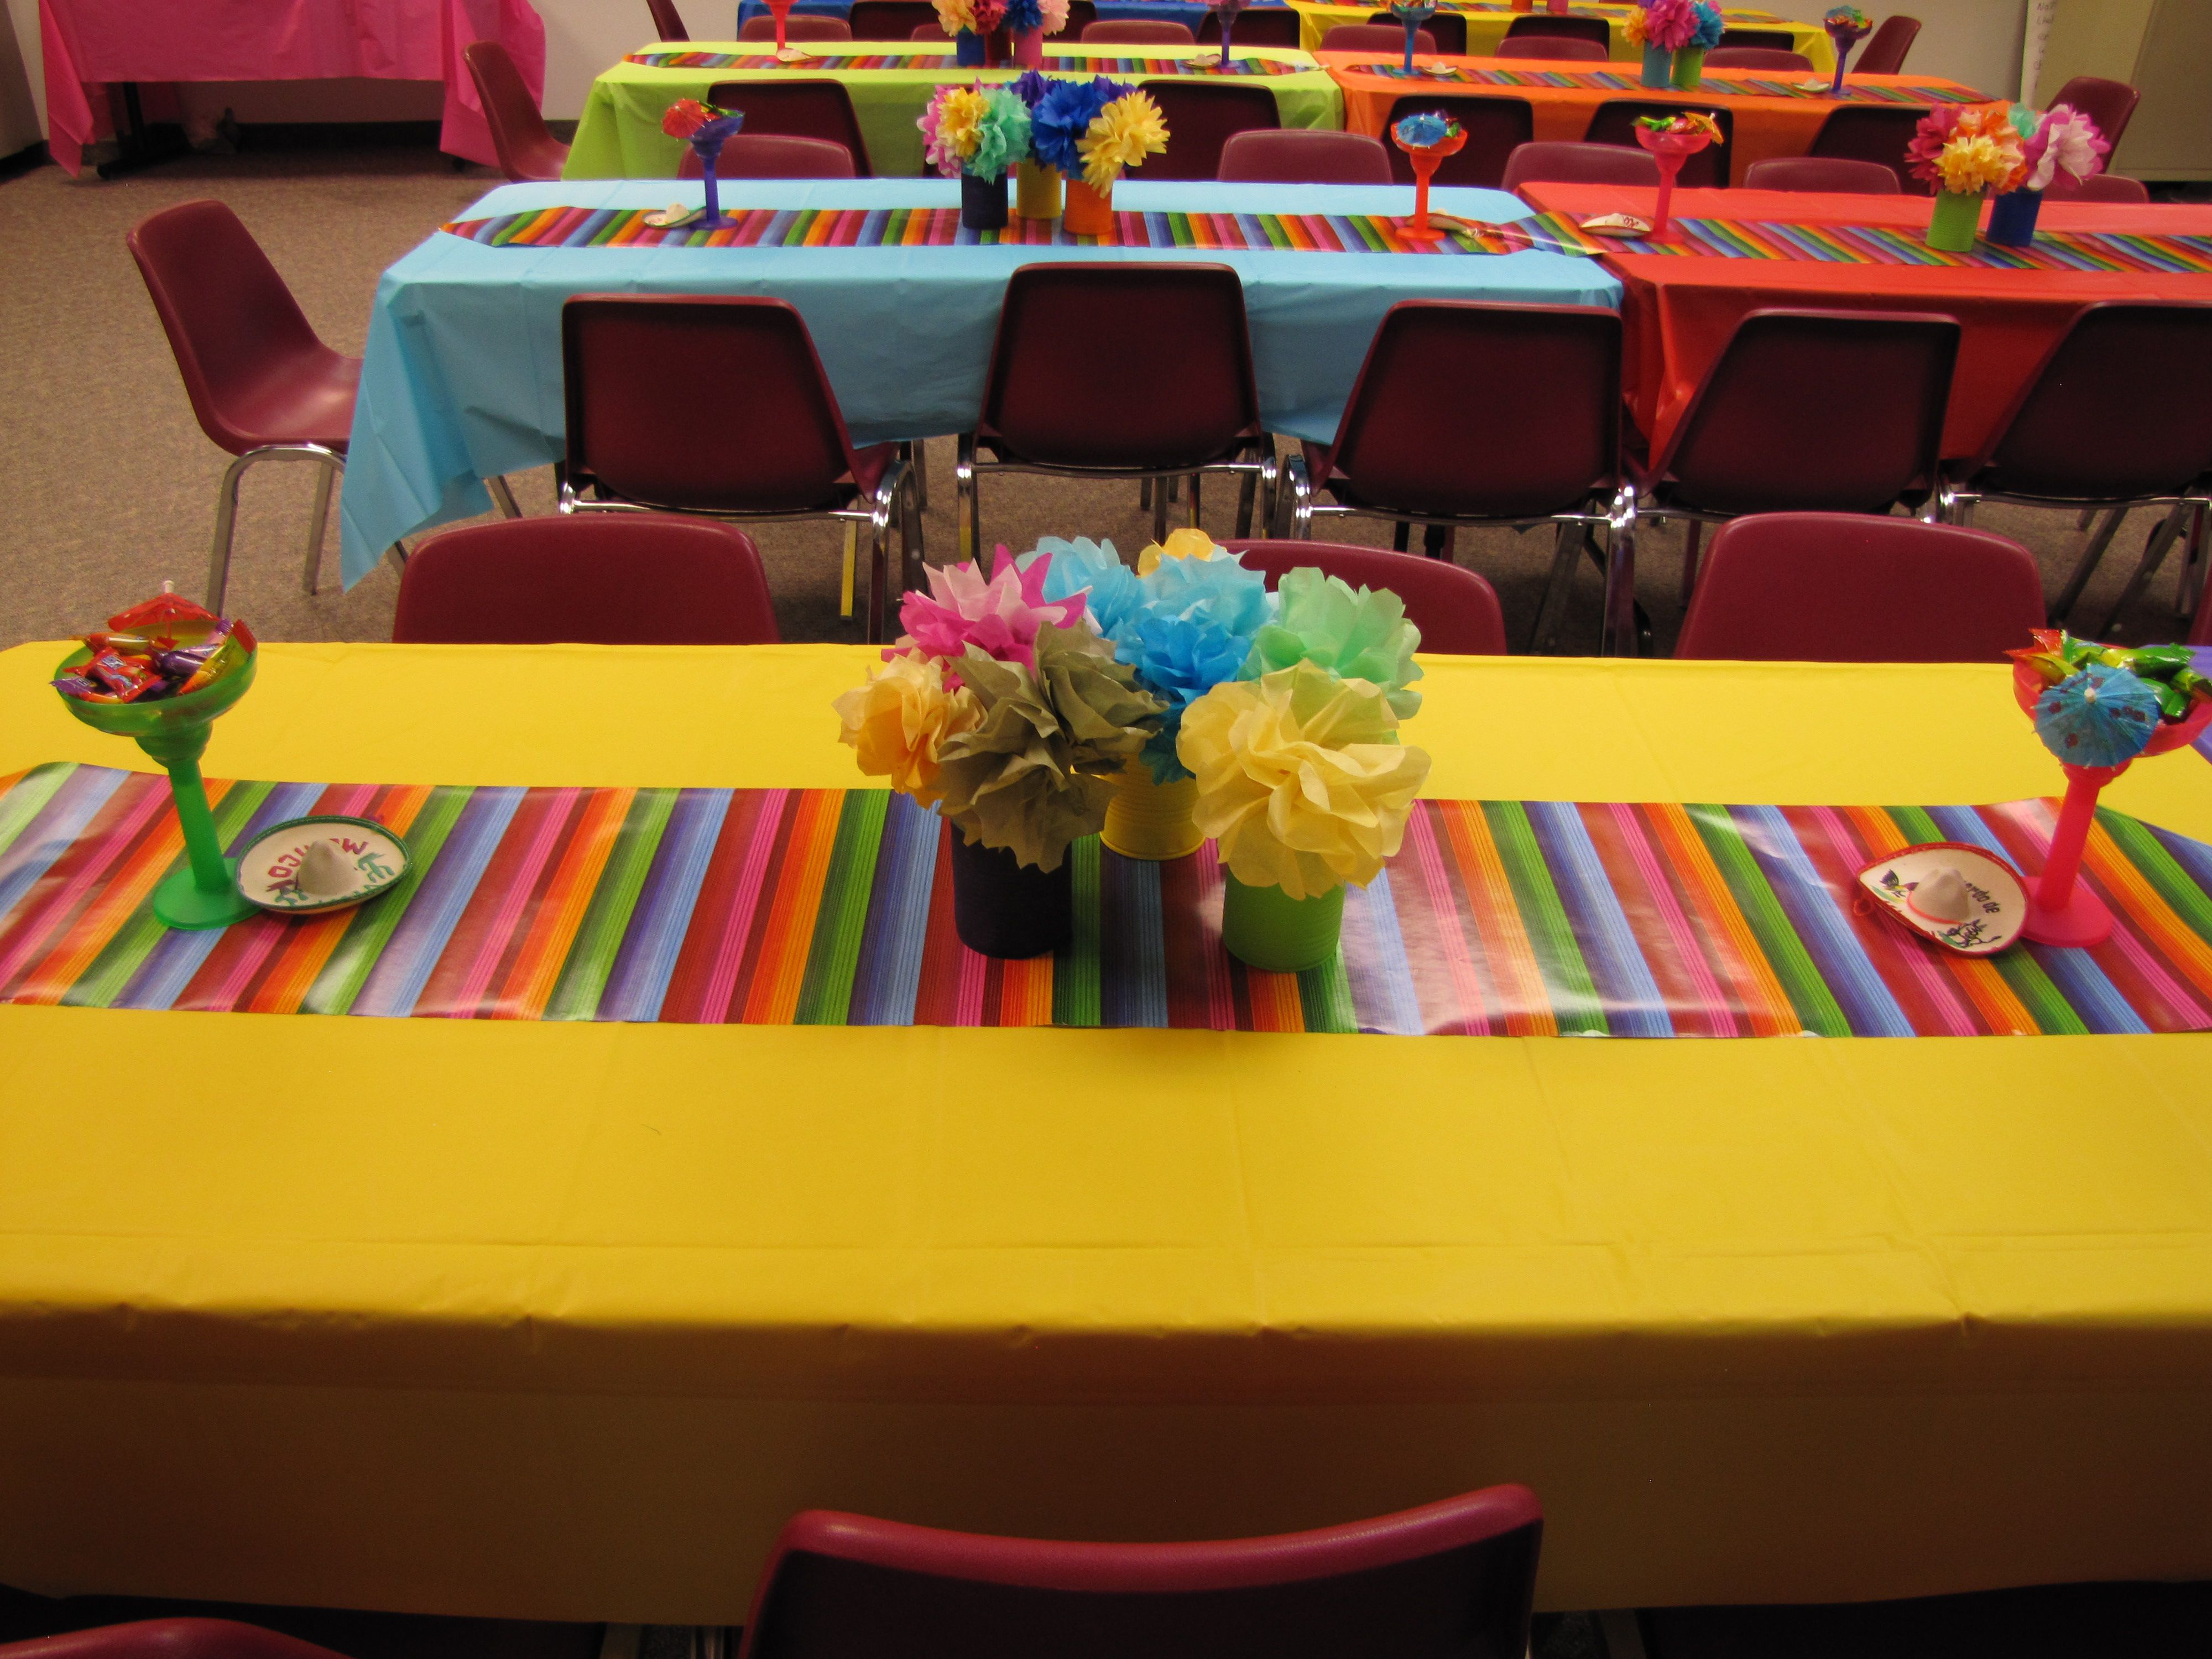 Various Brightly Colored Tableclothes A Serape Table Runner The Centerpiece Is Made Up Of Paper Flowers In Painted Cans Mini Sombreroargarita